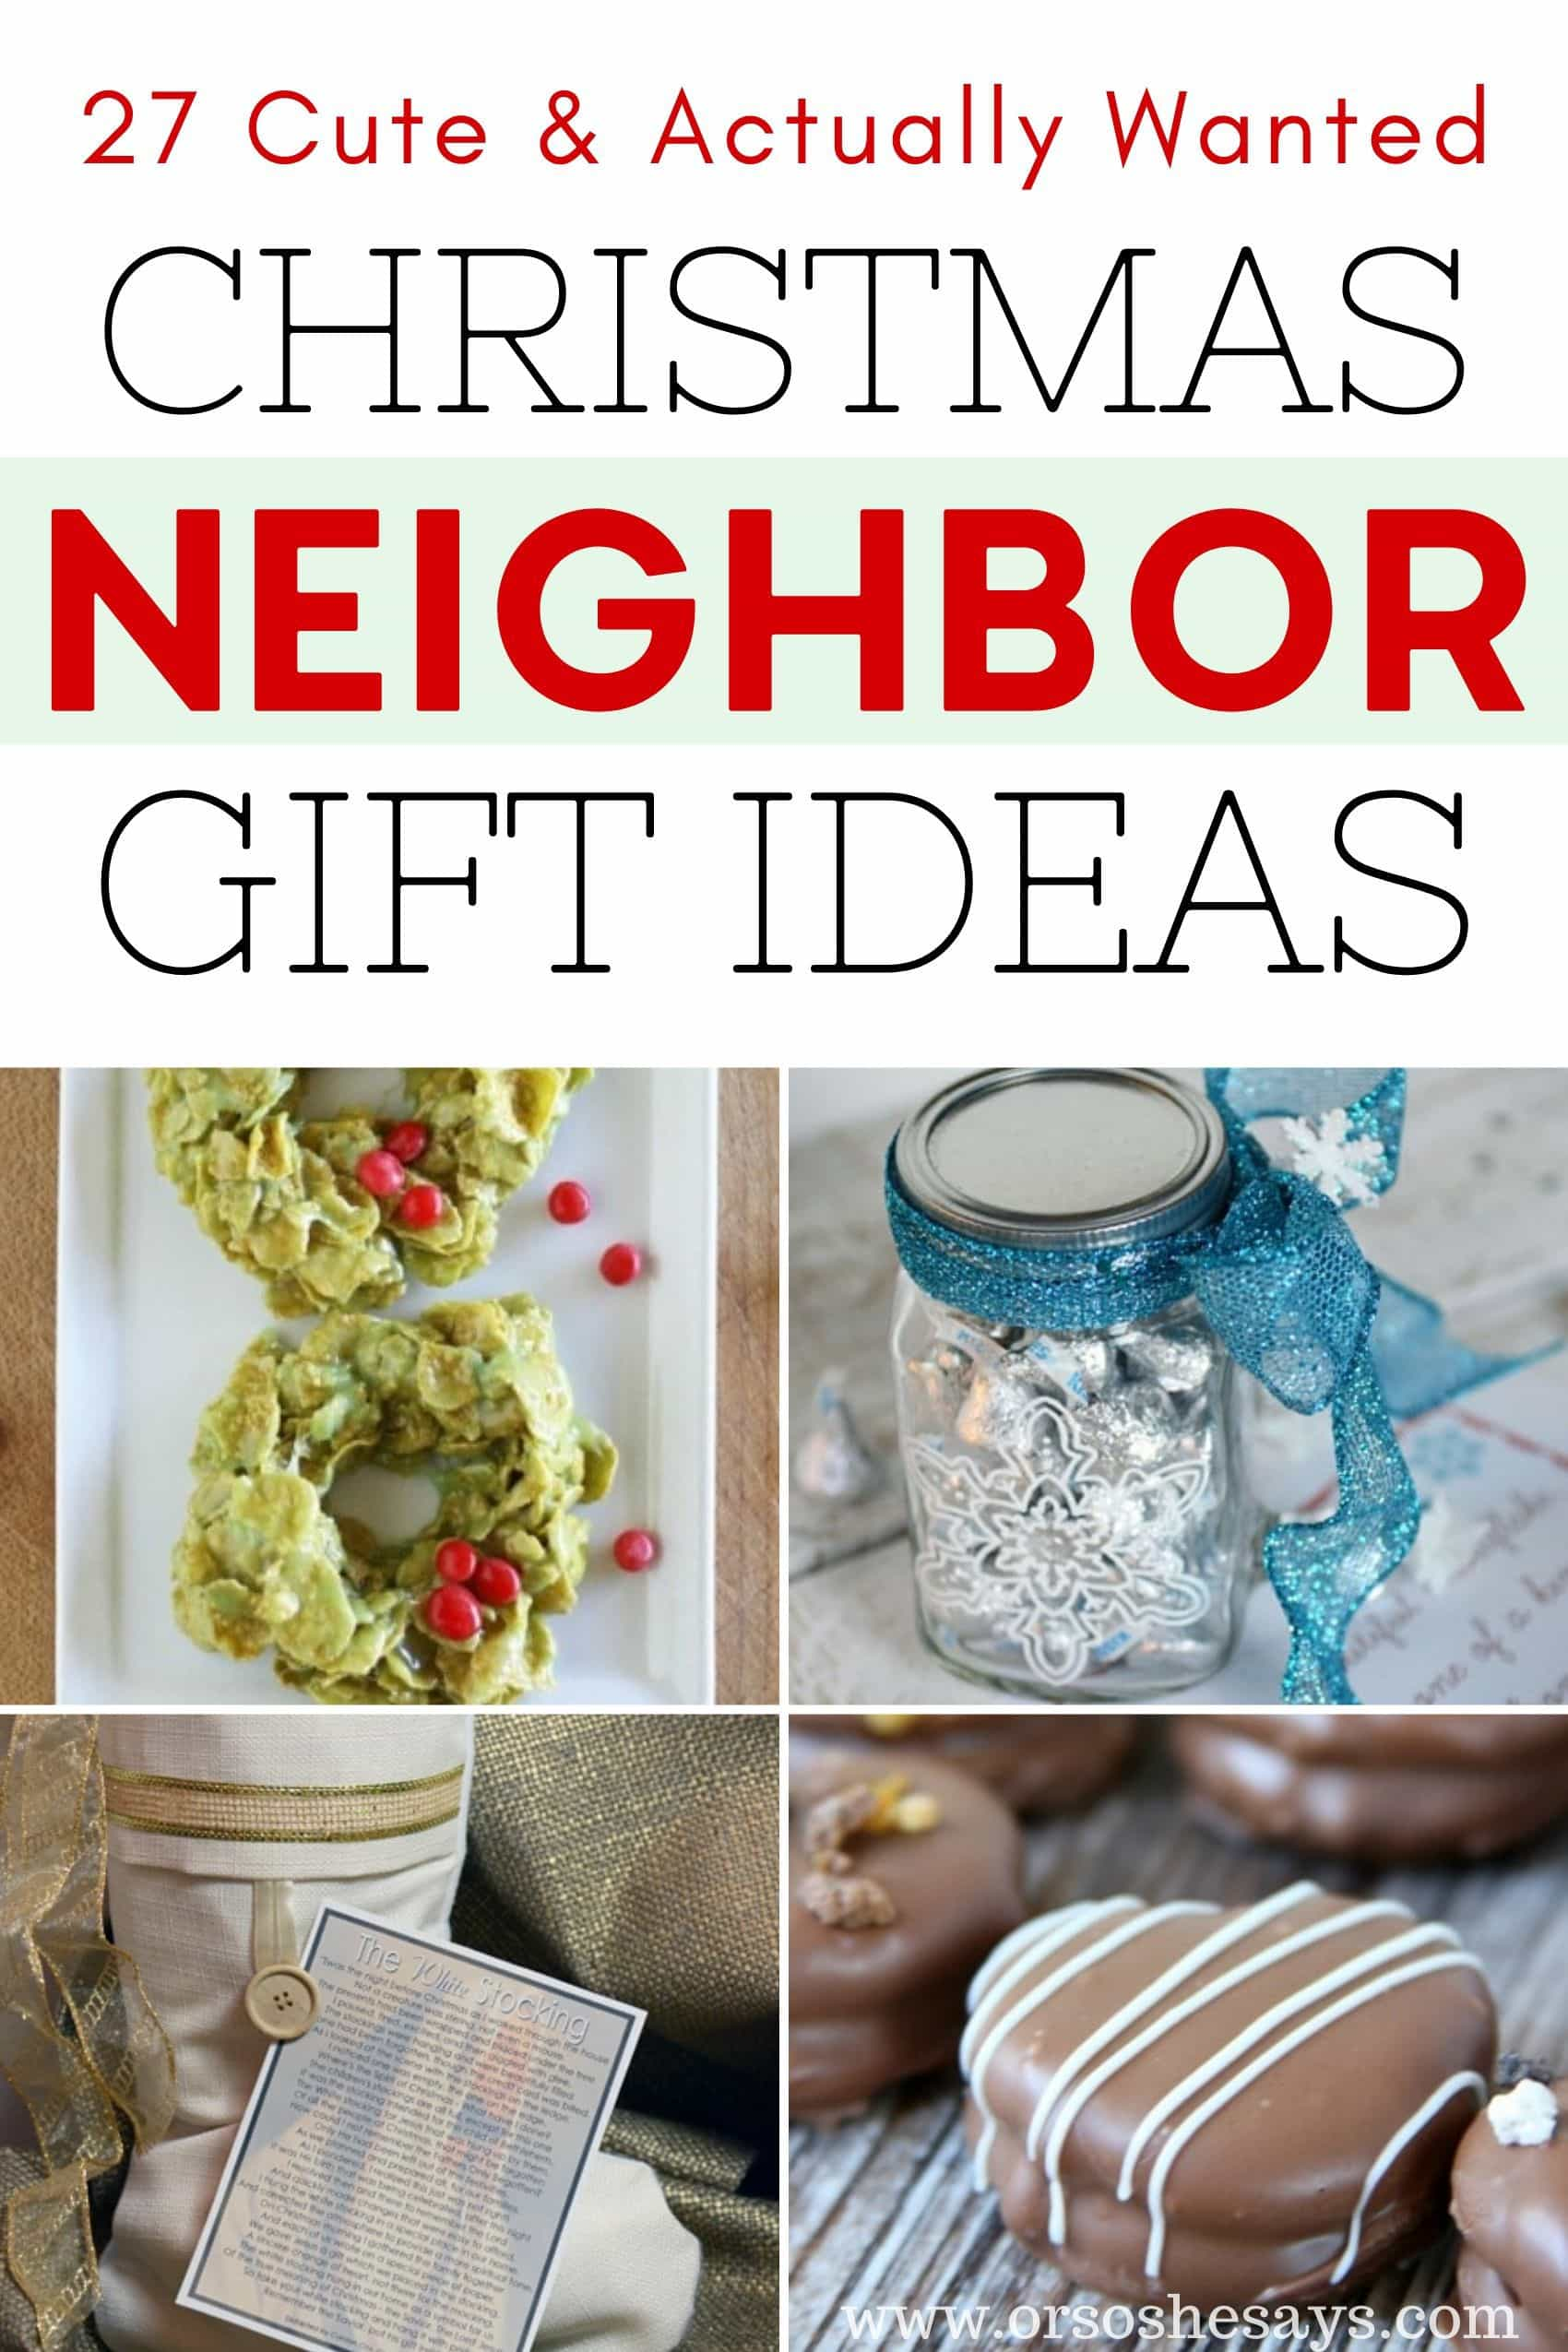 neighbor gift ideas